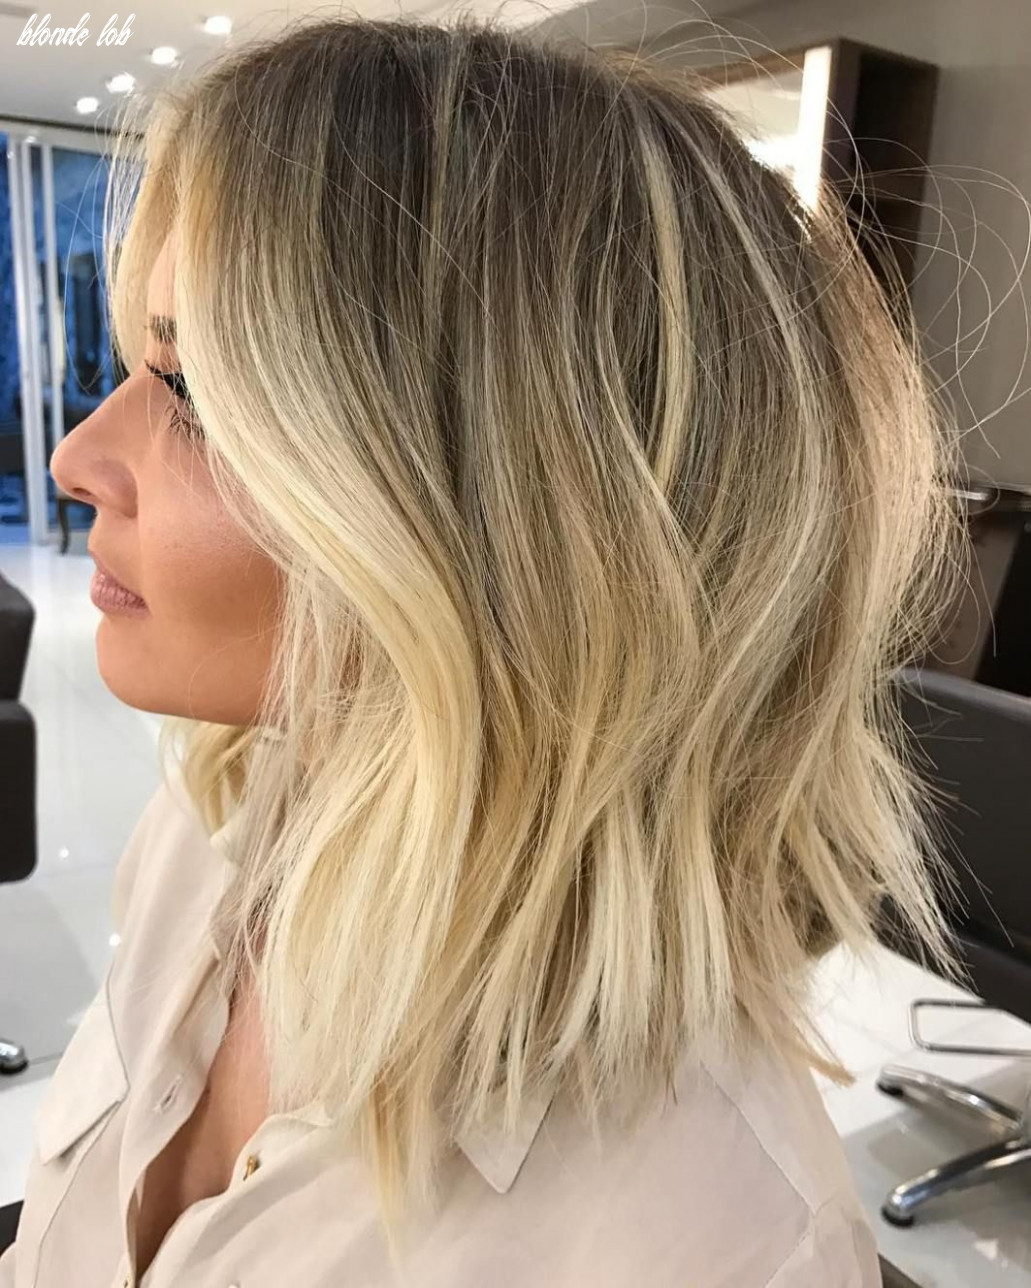 11 Banging Blonde Bob and Blonde Lob Hairstyles (With images ...